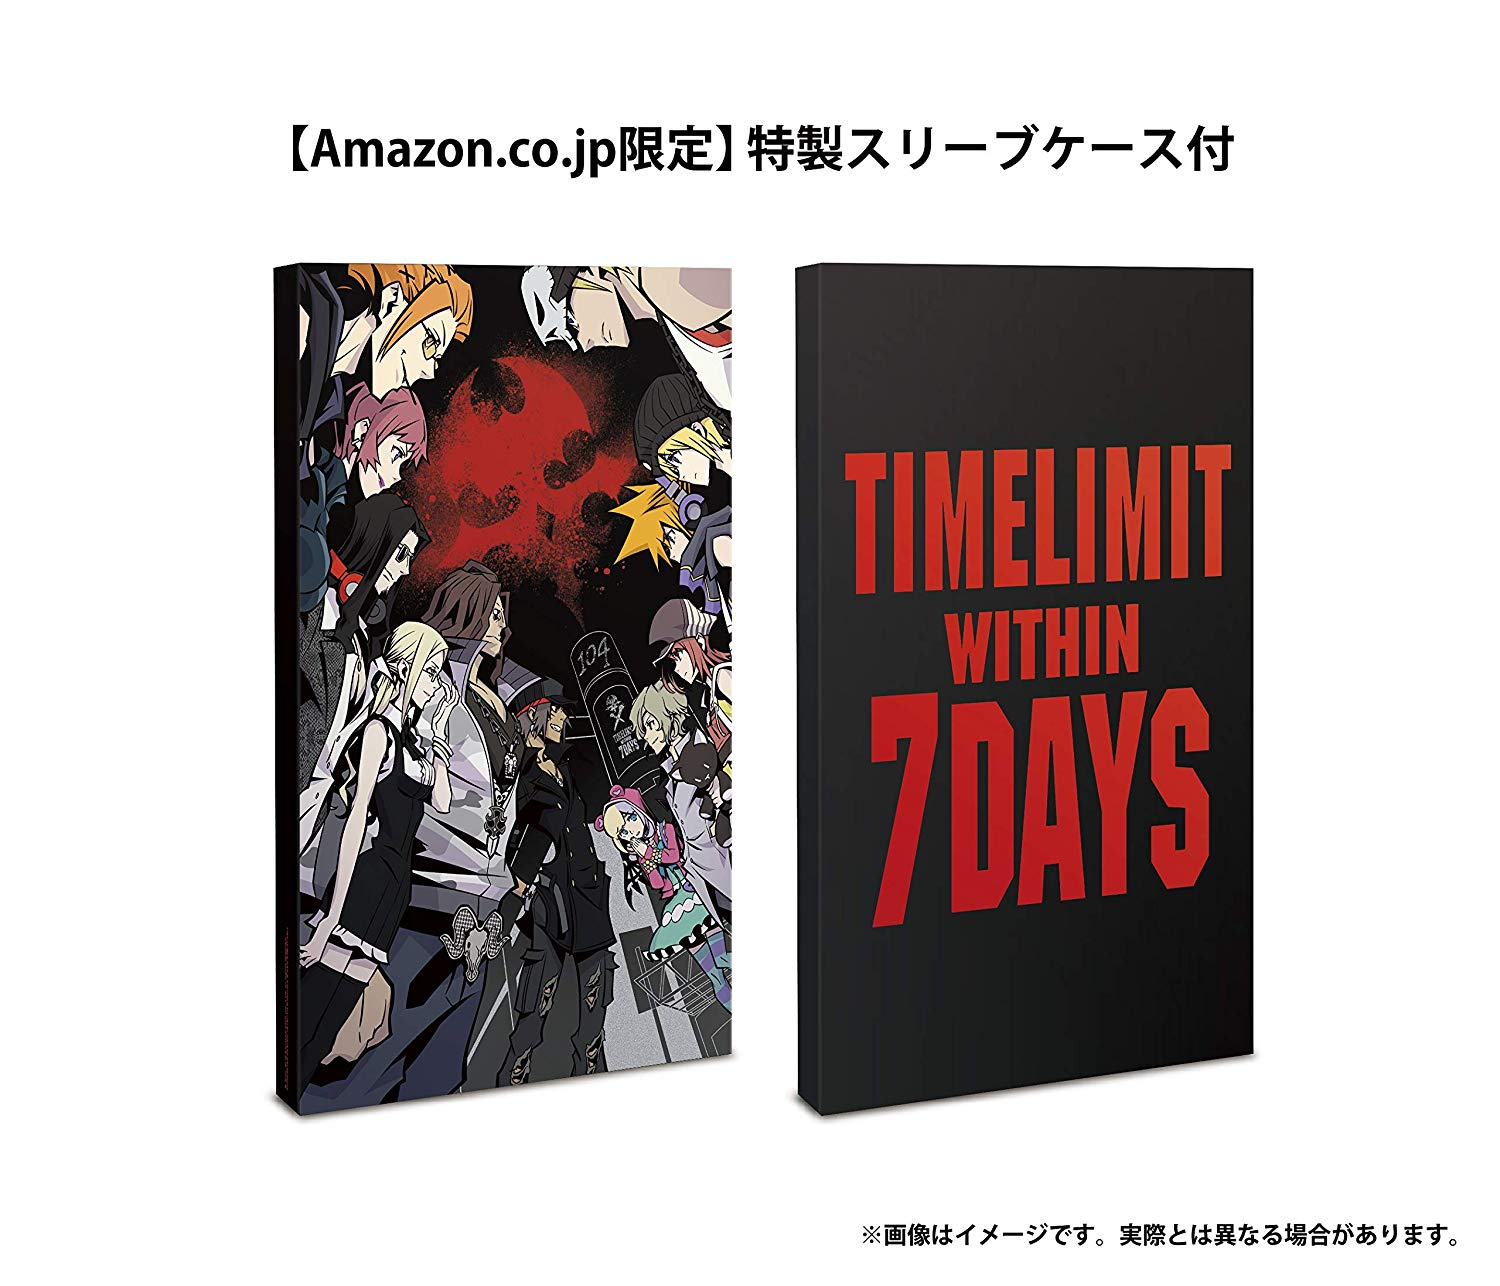 Amazon jp Selling Slip Case Version of The World Ends With